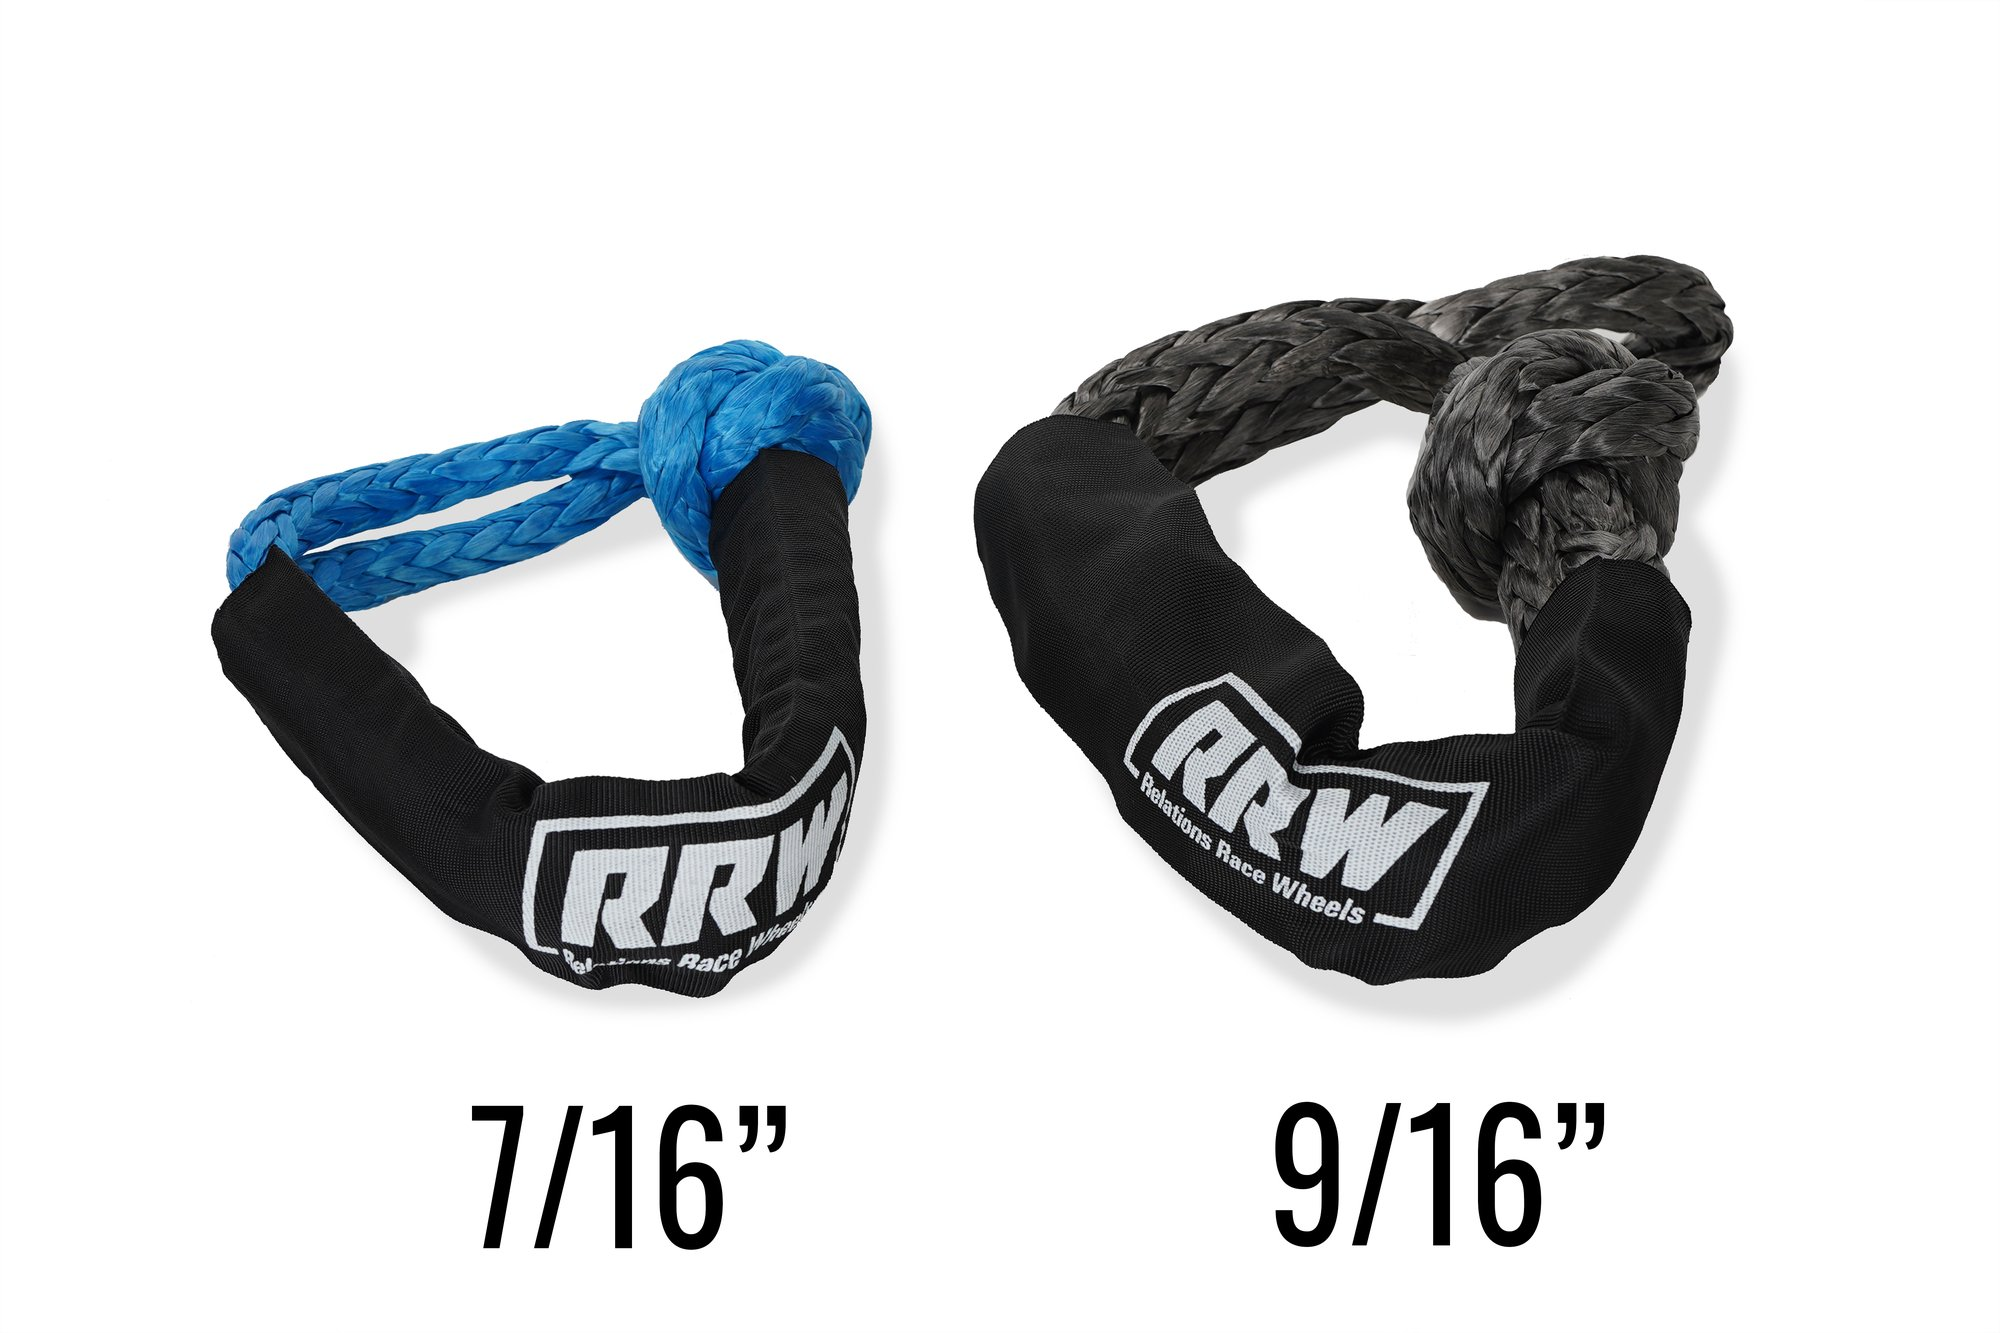 Relations Race Wheels (RRW) - Soft Shackles for Recovery